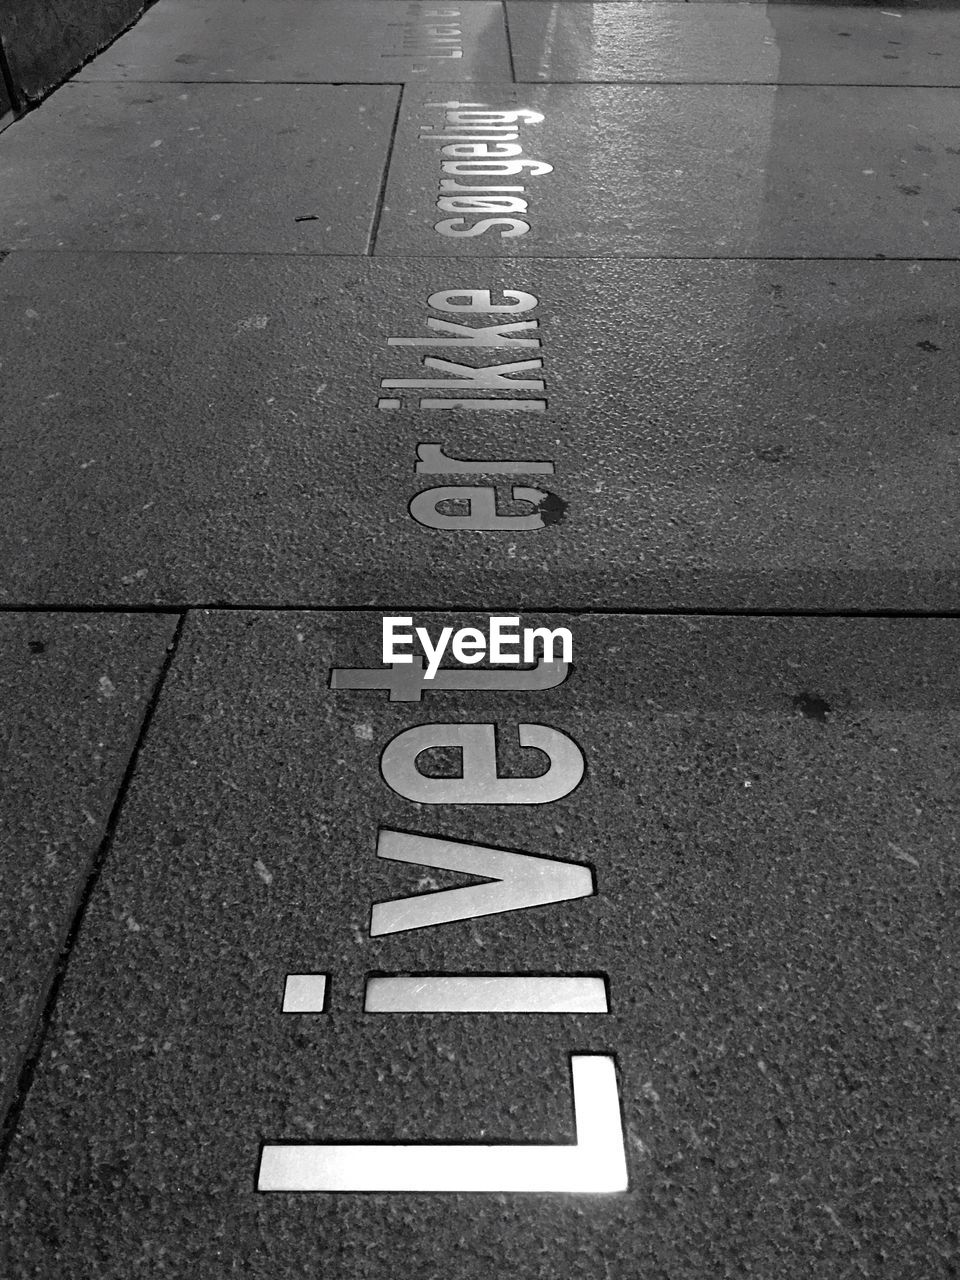 High Angle View Of Text On Pavement In City